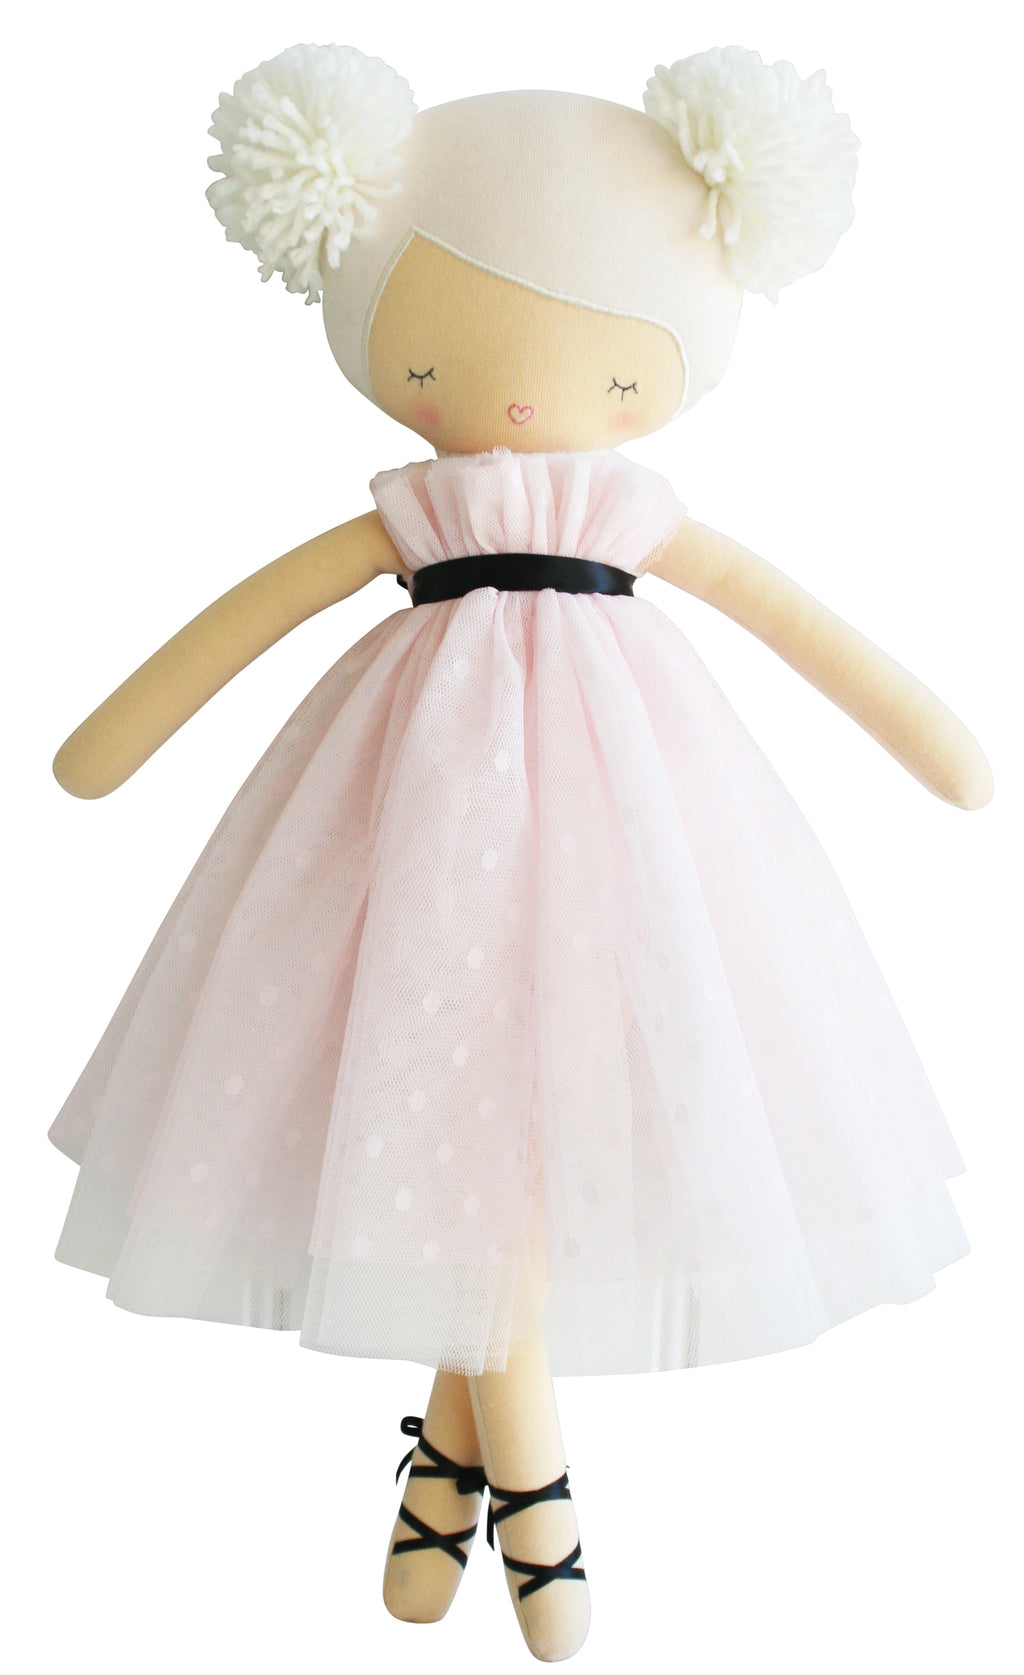 alimrose-scarlett-pom-pom-doll-faith-laine-childrens-decor